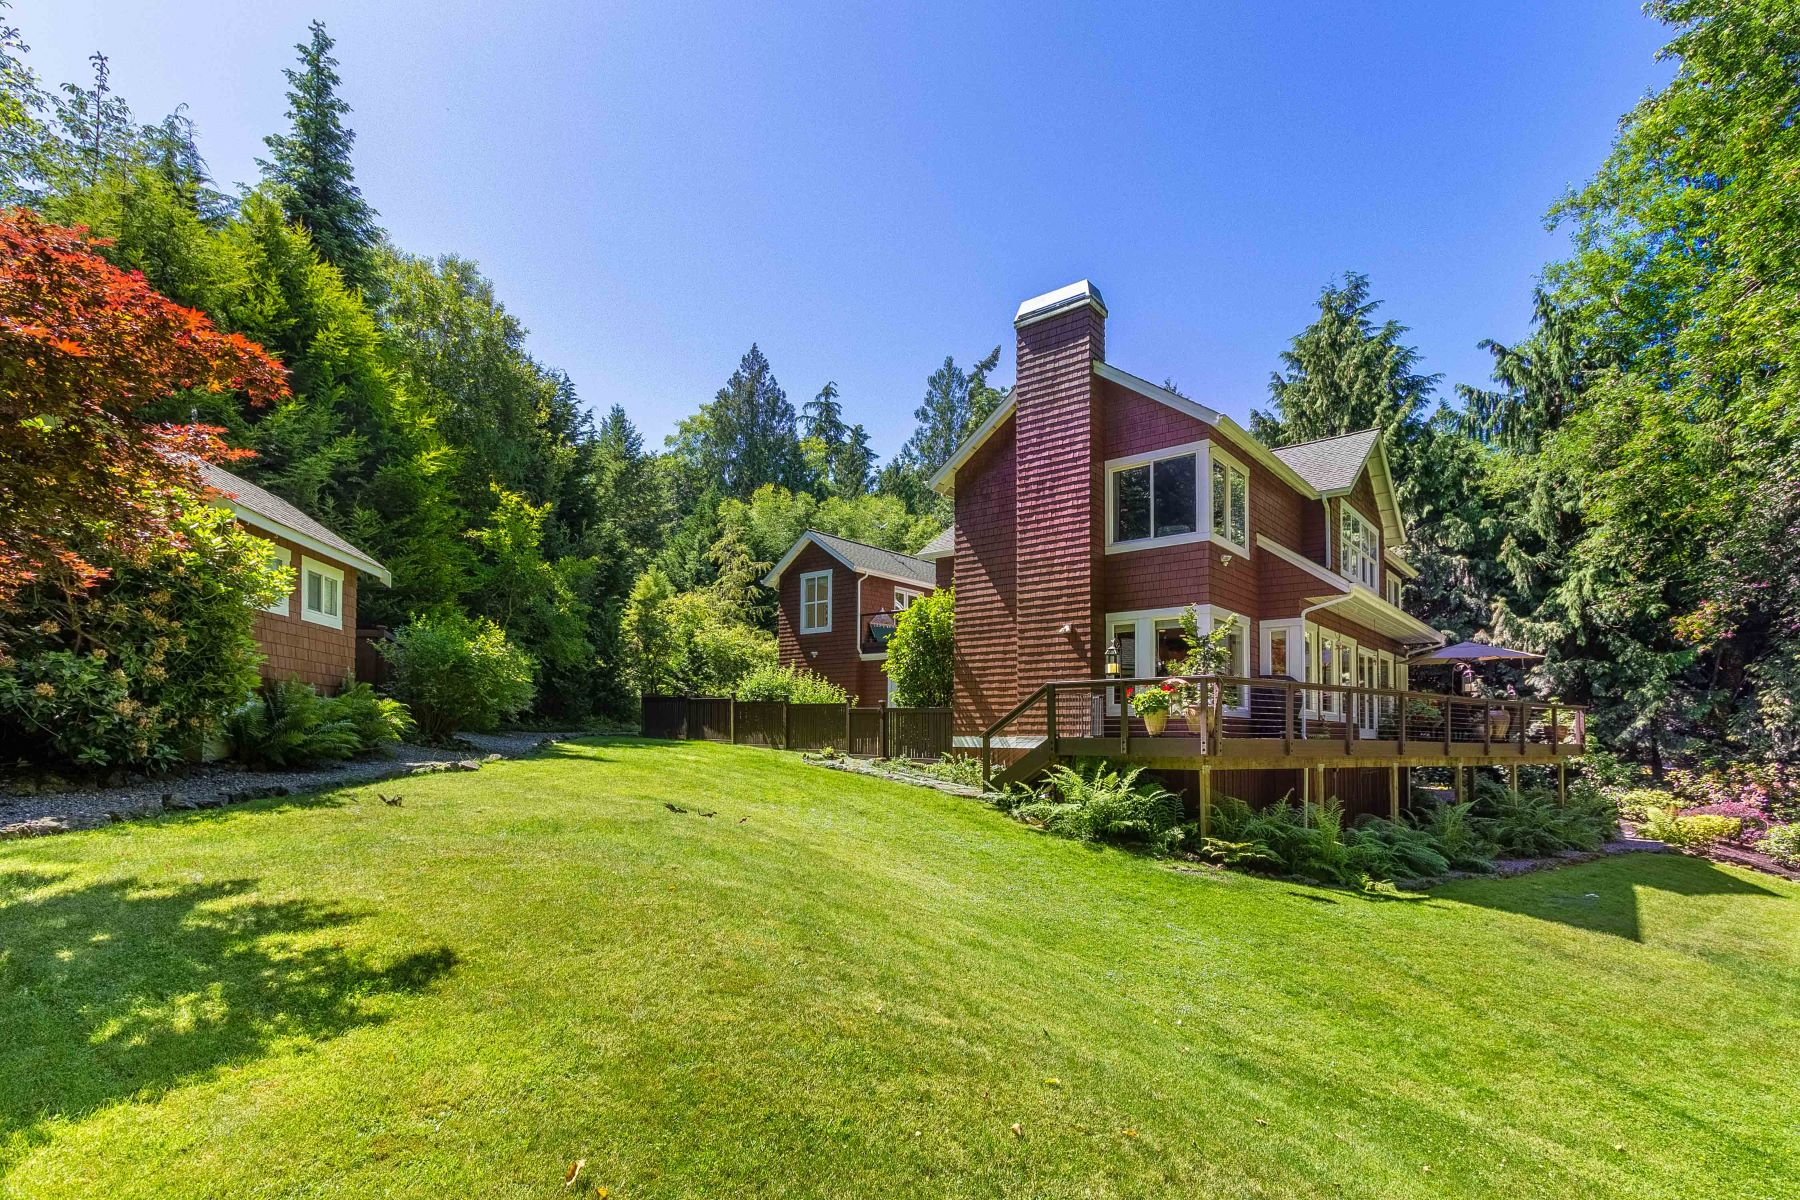 Single Family Home for Sale at Classic Northwest Style 8392 Sumanee Place NE Bainbridge Island, Washington 98110 United States